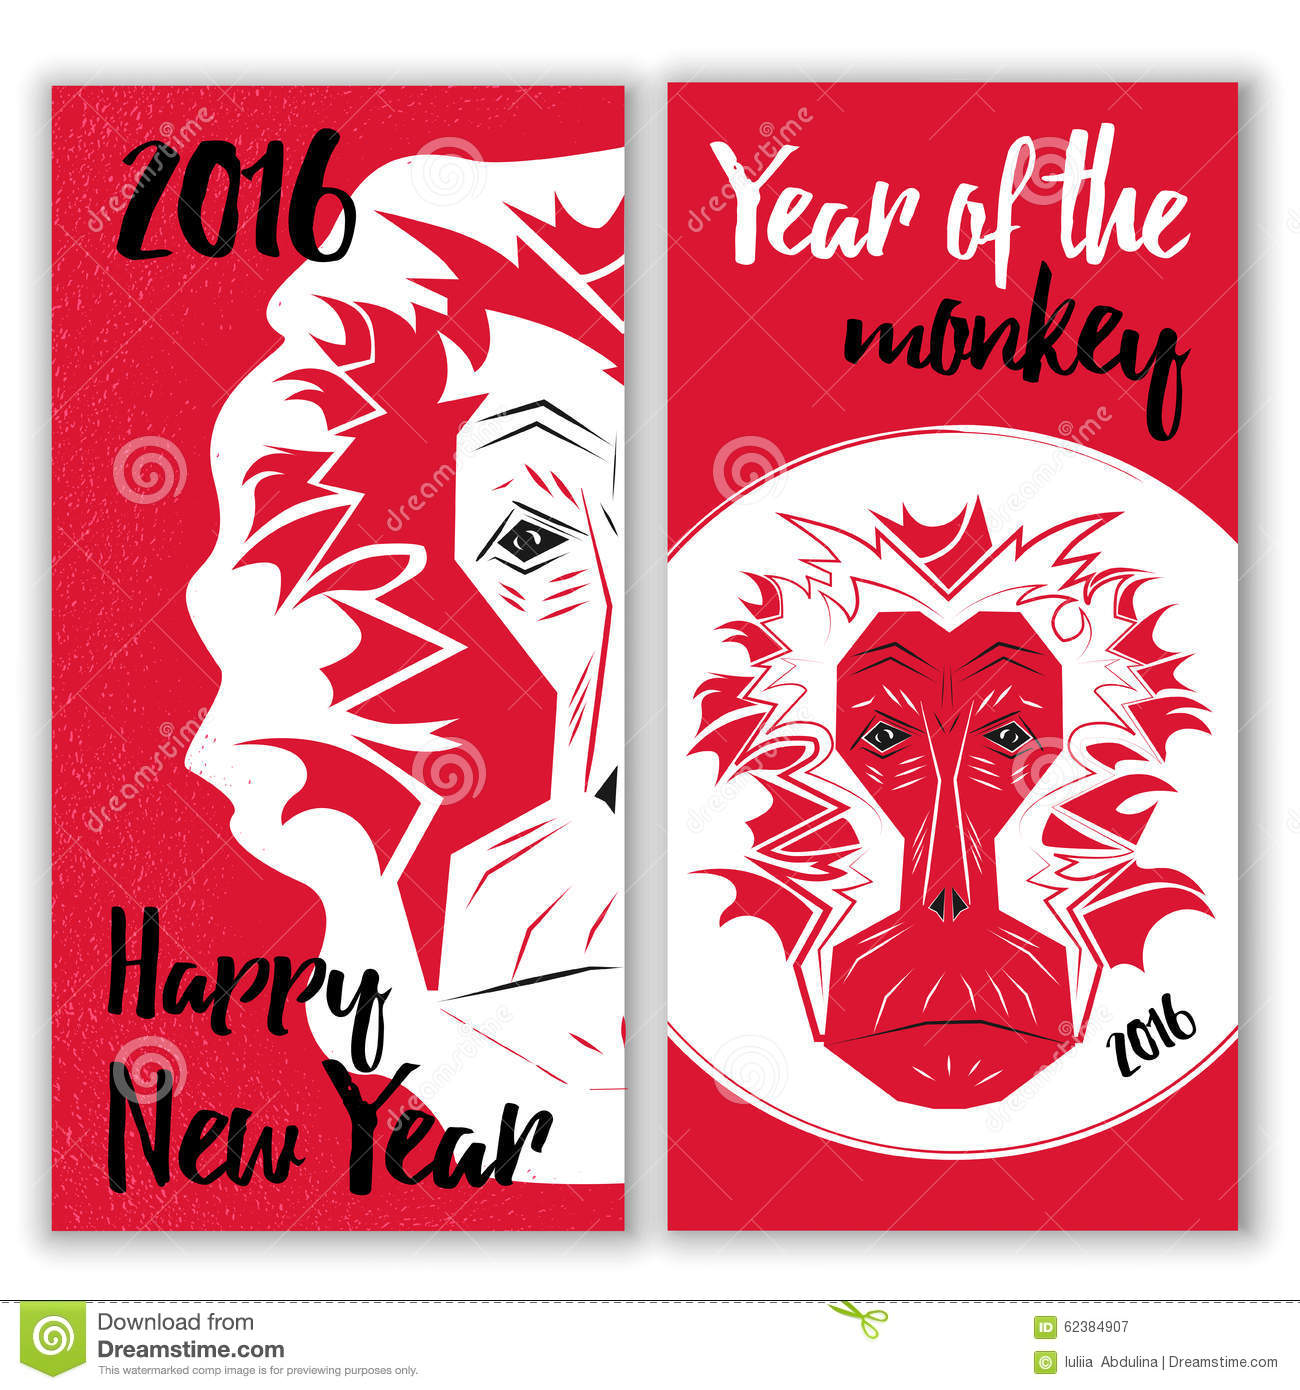 symbol of New Year 2016. Vertical Banners with Chinese New Year ...